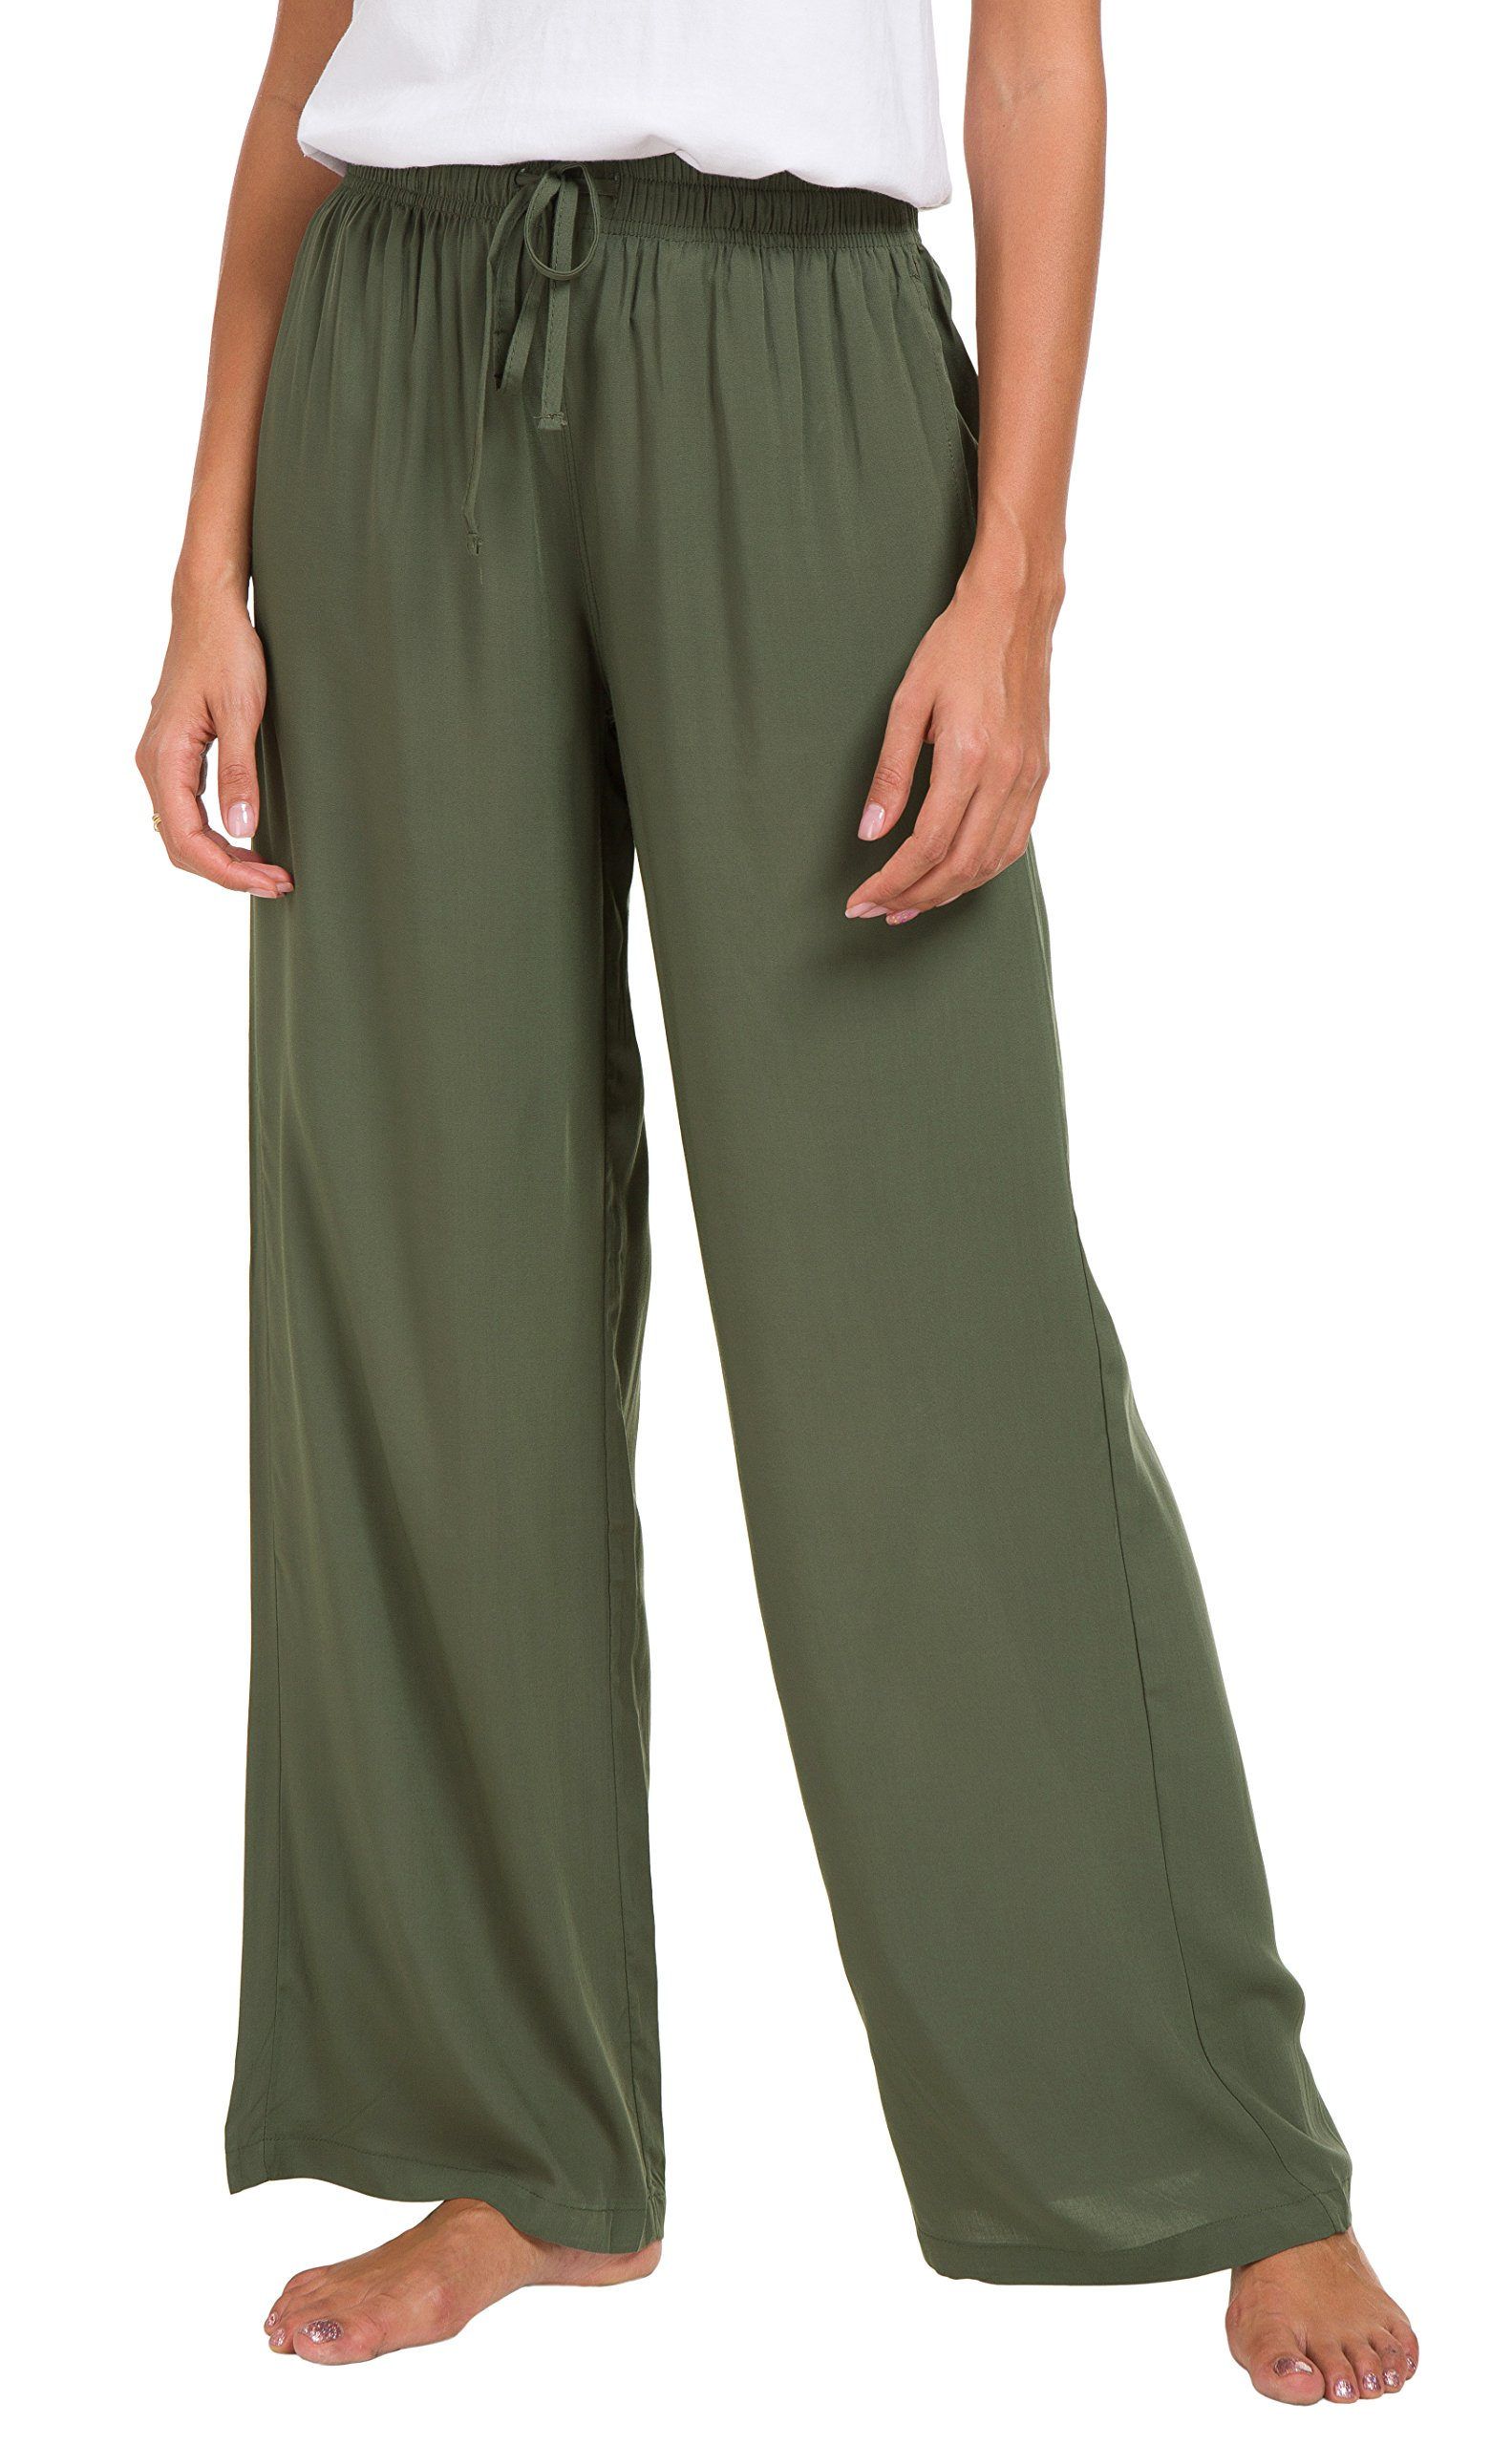 Urban CoCo Women's Solid Color Drawstring Lounge Pants (M, Army Green)